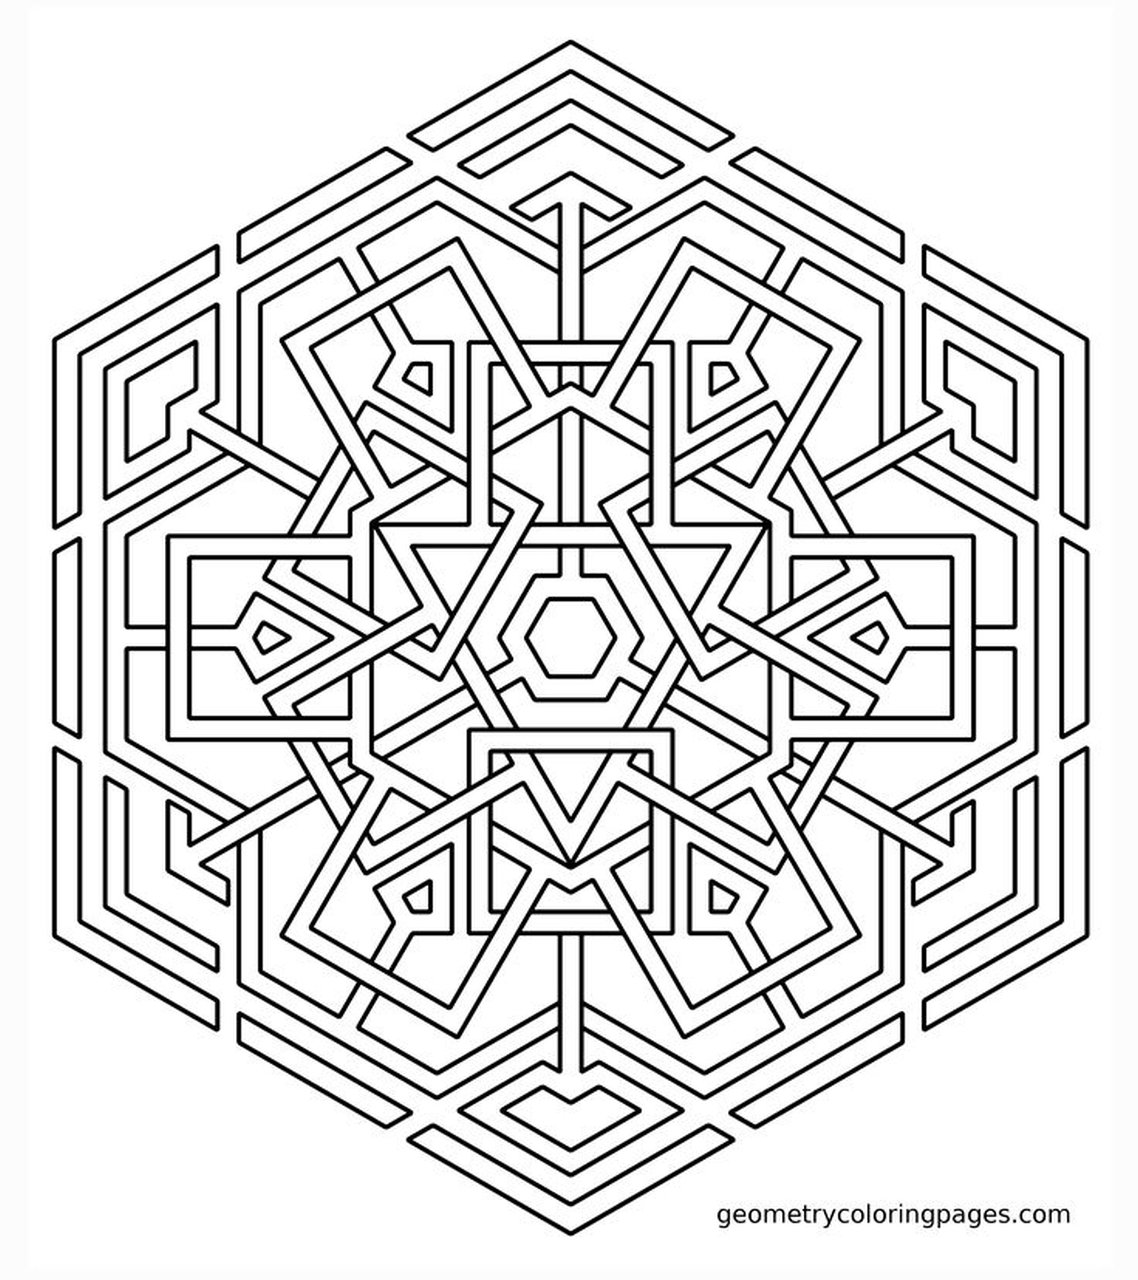 Get This Hard Geometric Coloring Pages to Print Out - 97316